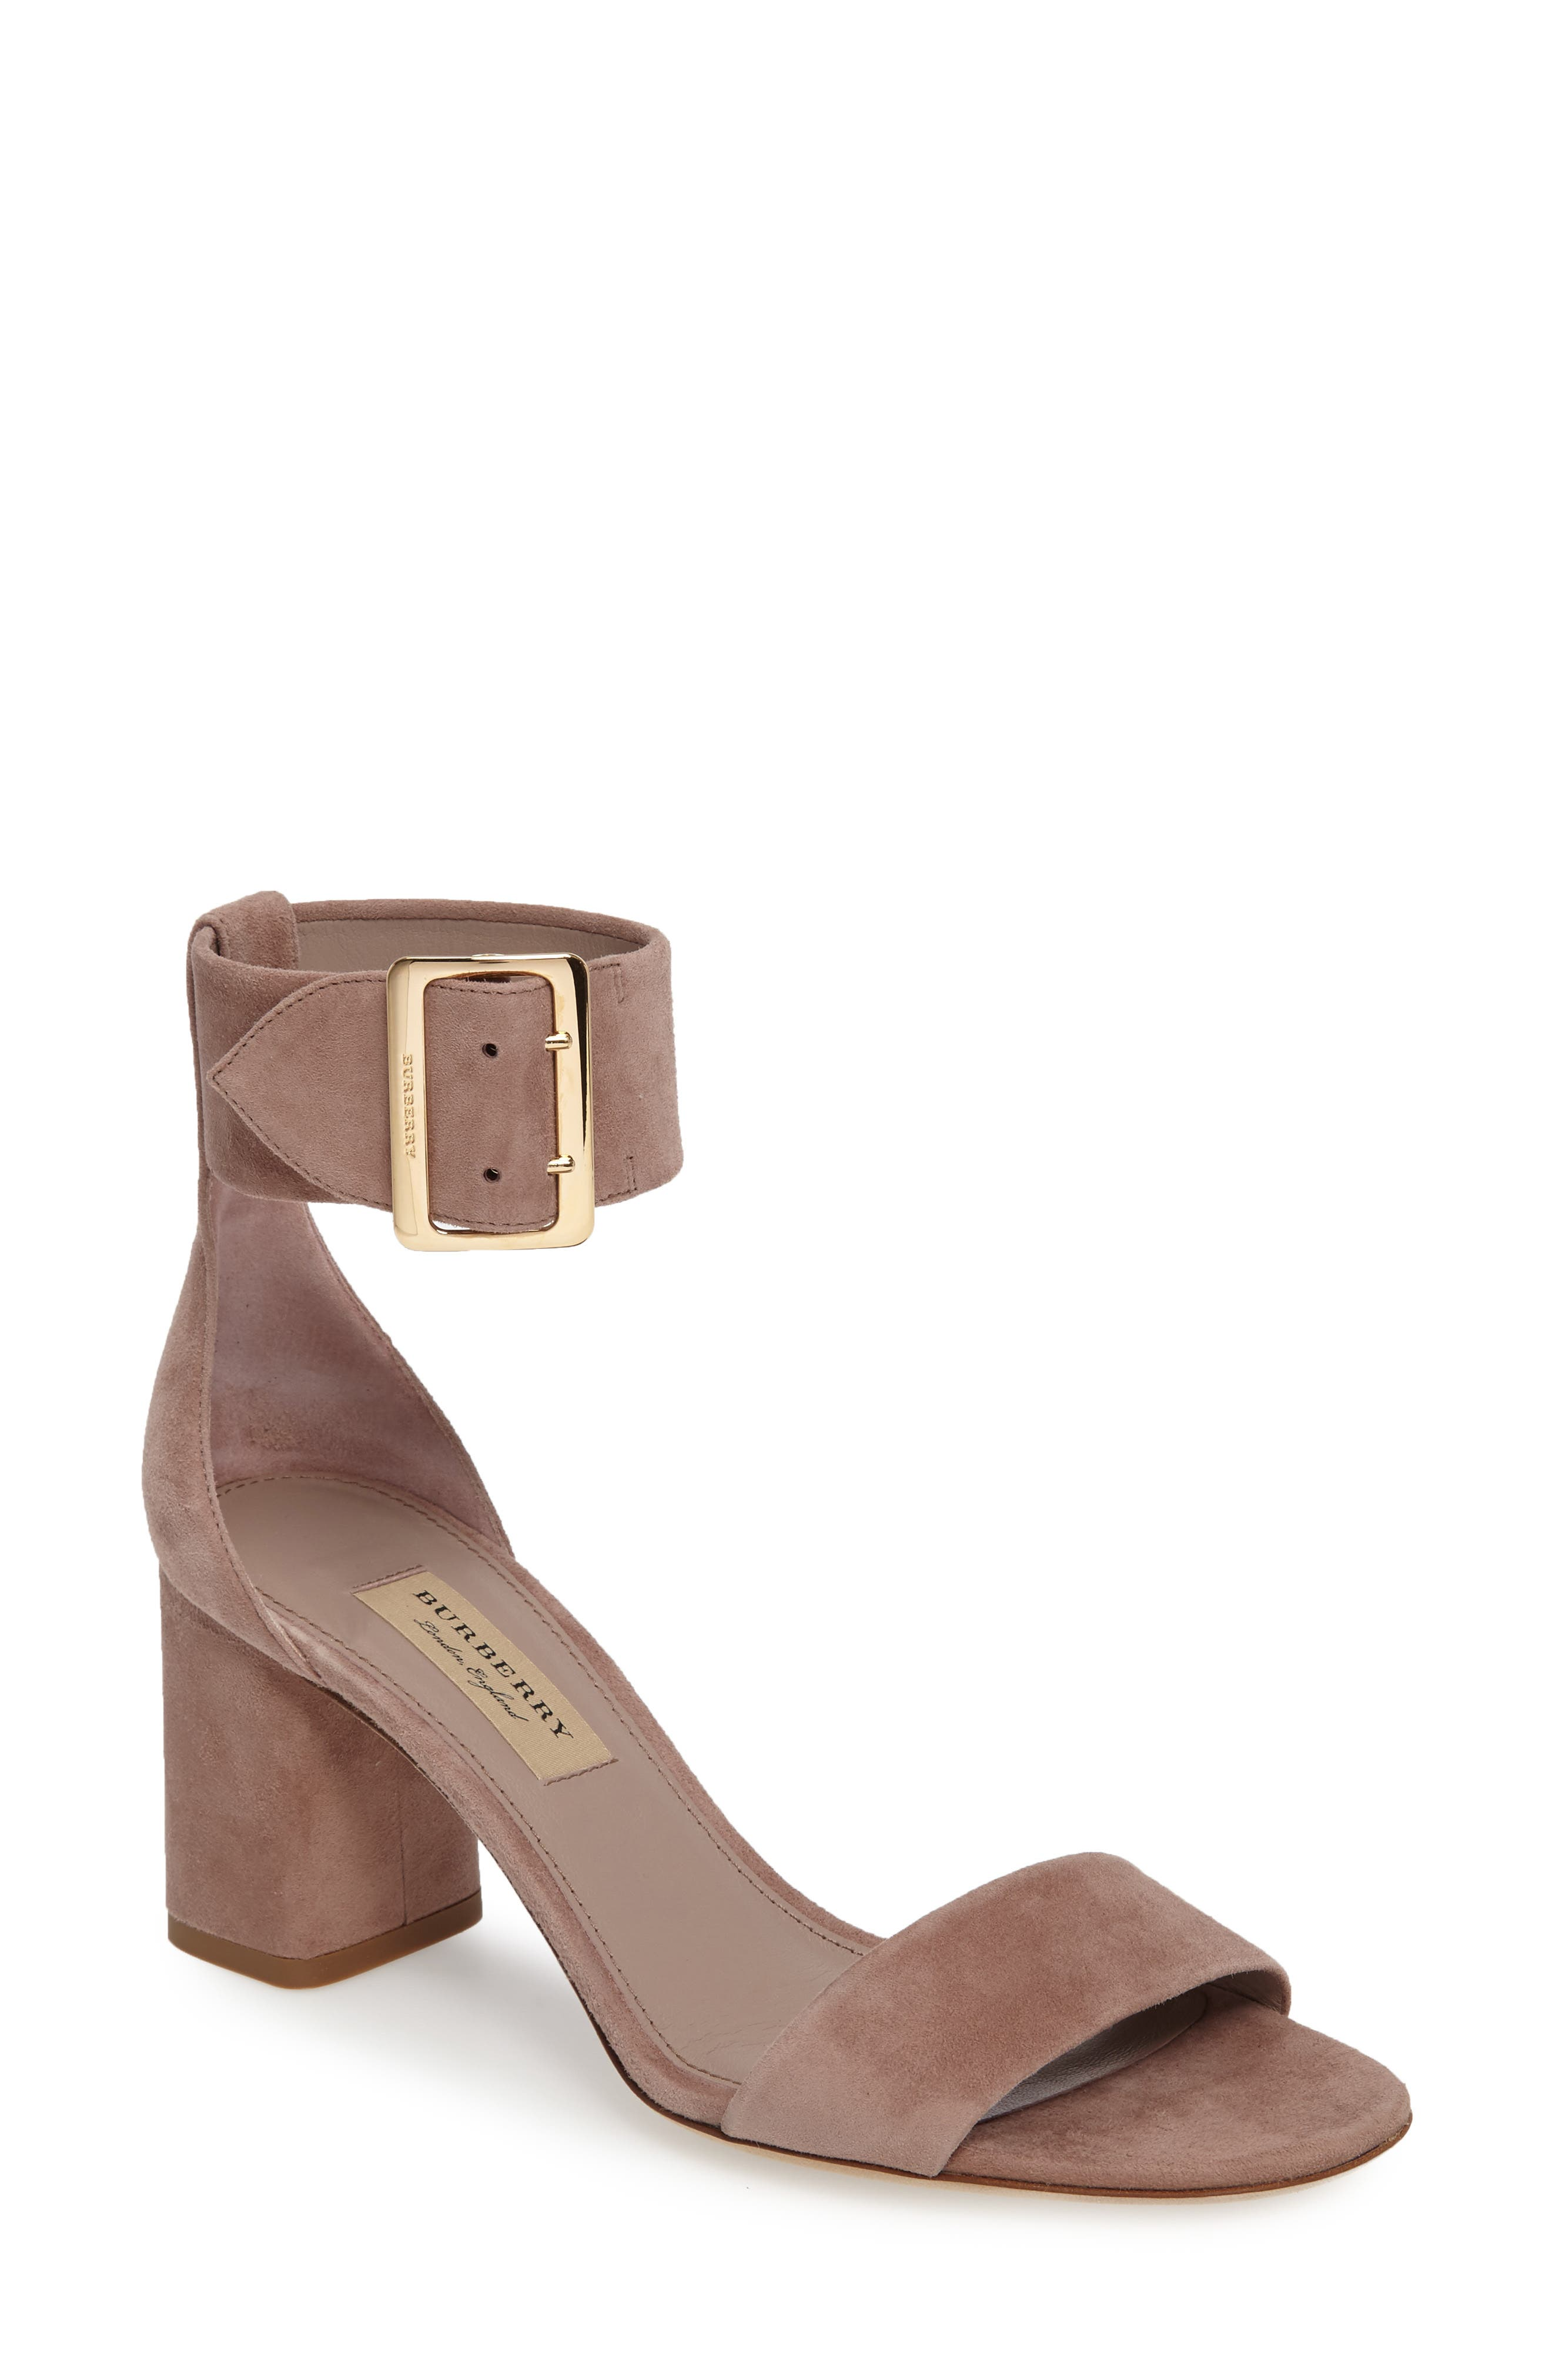 Trench Buckle Sandal,                             Main thumbnail 1, color,